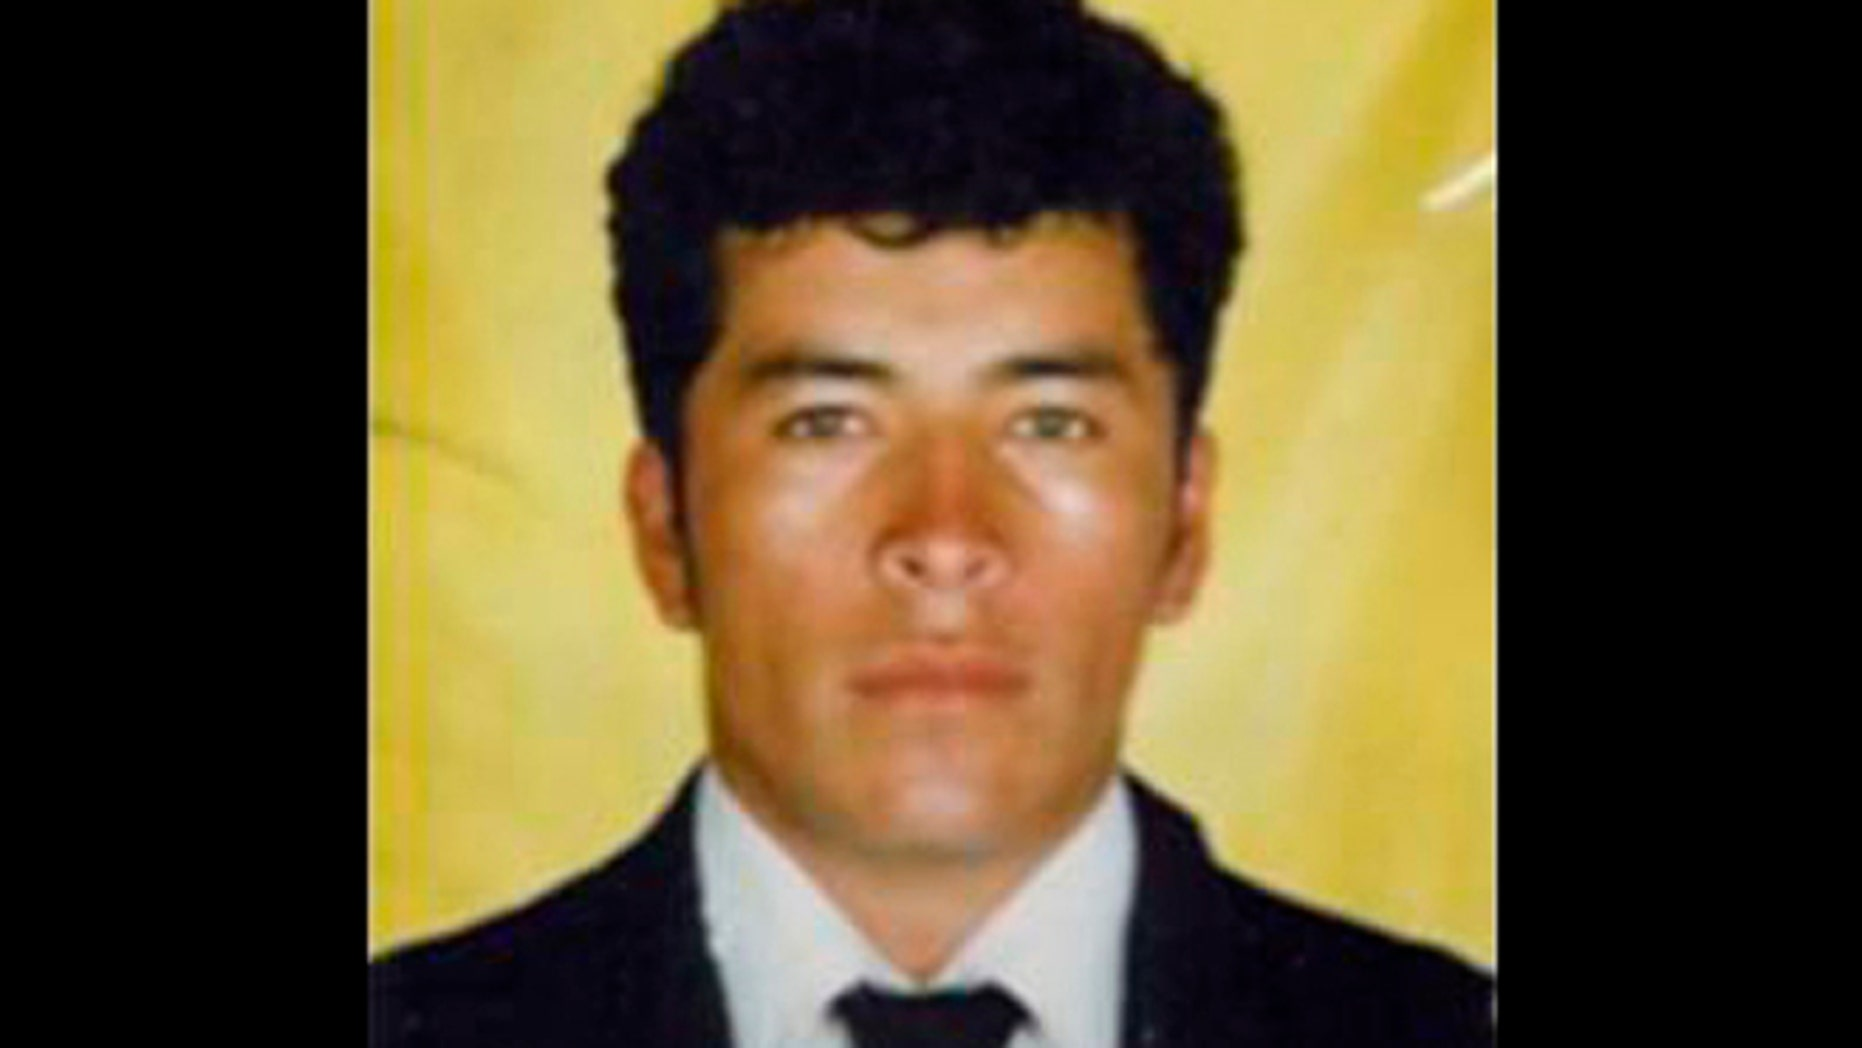 This undated photo released by Mexico's Attorney General's Office shows alleged Zeta drug cartel leader and founder Heriberto Lazcano Lazcano in an unknown location. Mexico's Navy says fingerprints confirm that cartel leader Lazcano, an army special forces deserter whose brutal paramilitary tactics helped define the devastating six-year war among Mexico's drug gangs and authorities, was killed Sunday, Oct. 7, 2012 in a firefight with marines in the northern state of Coahuila on the border with the Texas. (AP Photo/Mexico Attorney General's Office)